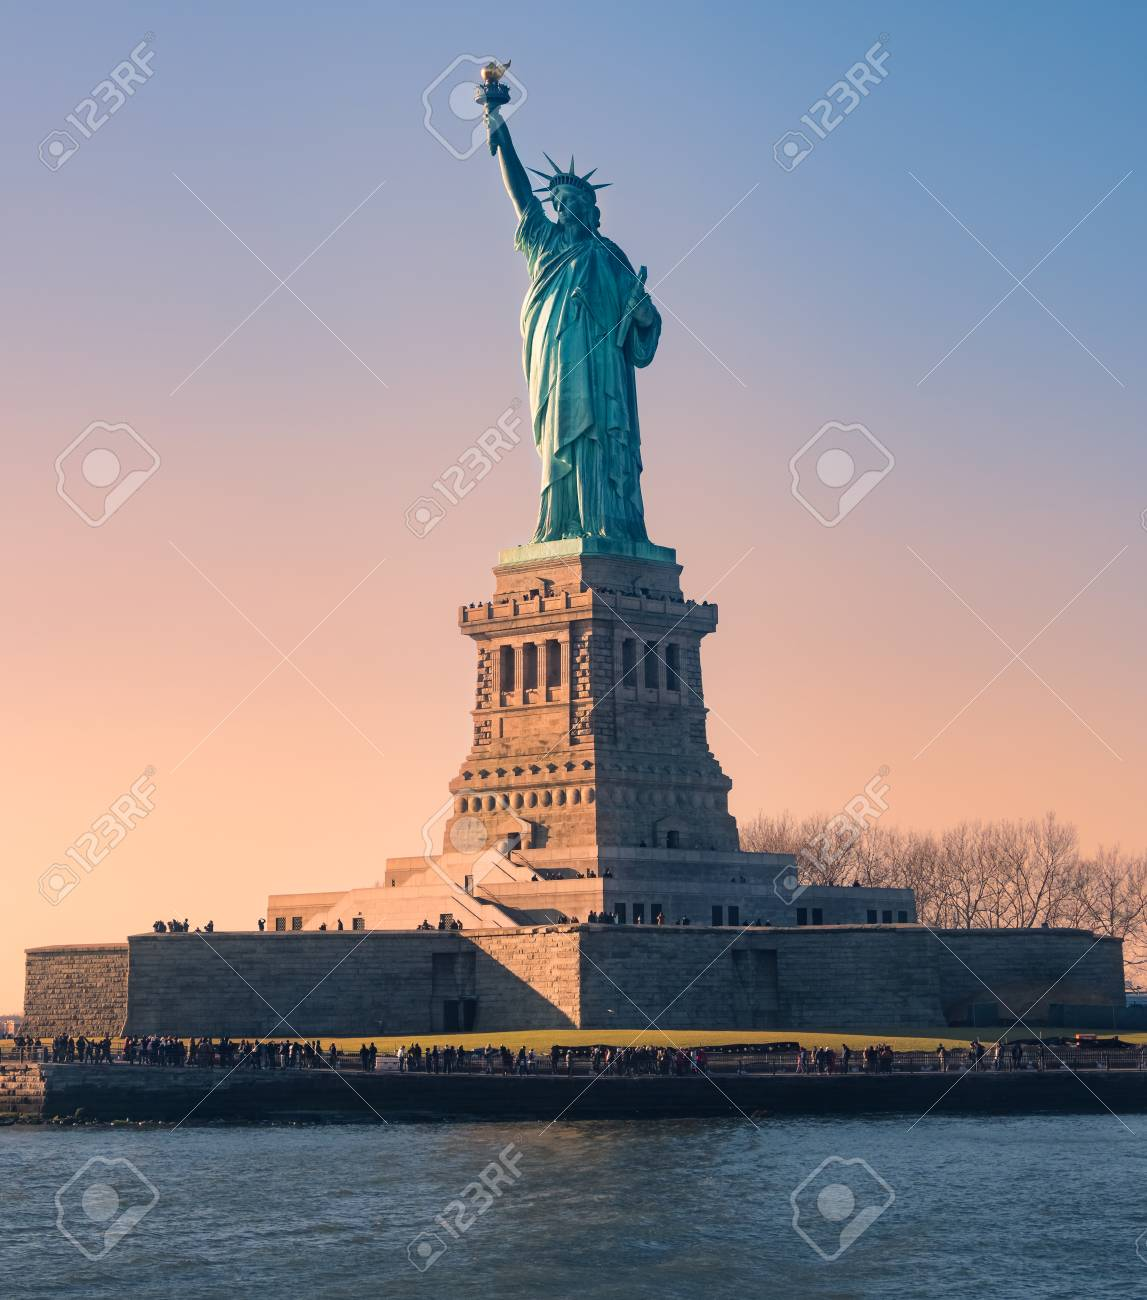 Statue of Liberty at sunset in Christmas, New York, USA - 105038727